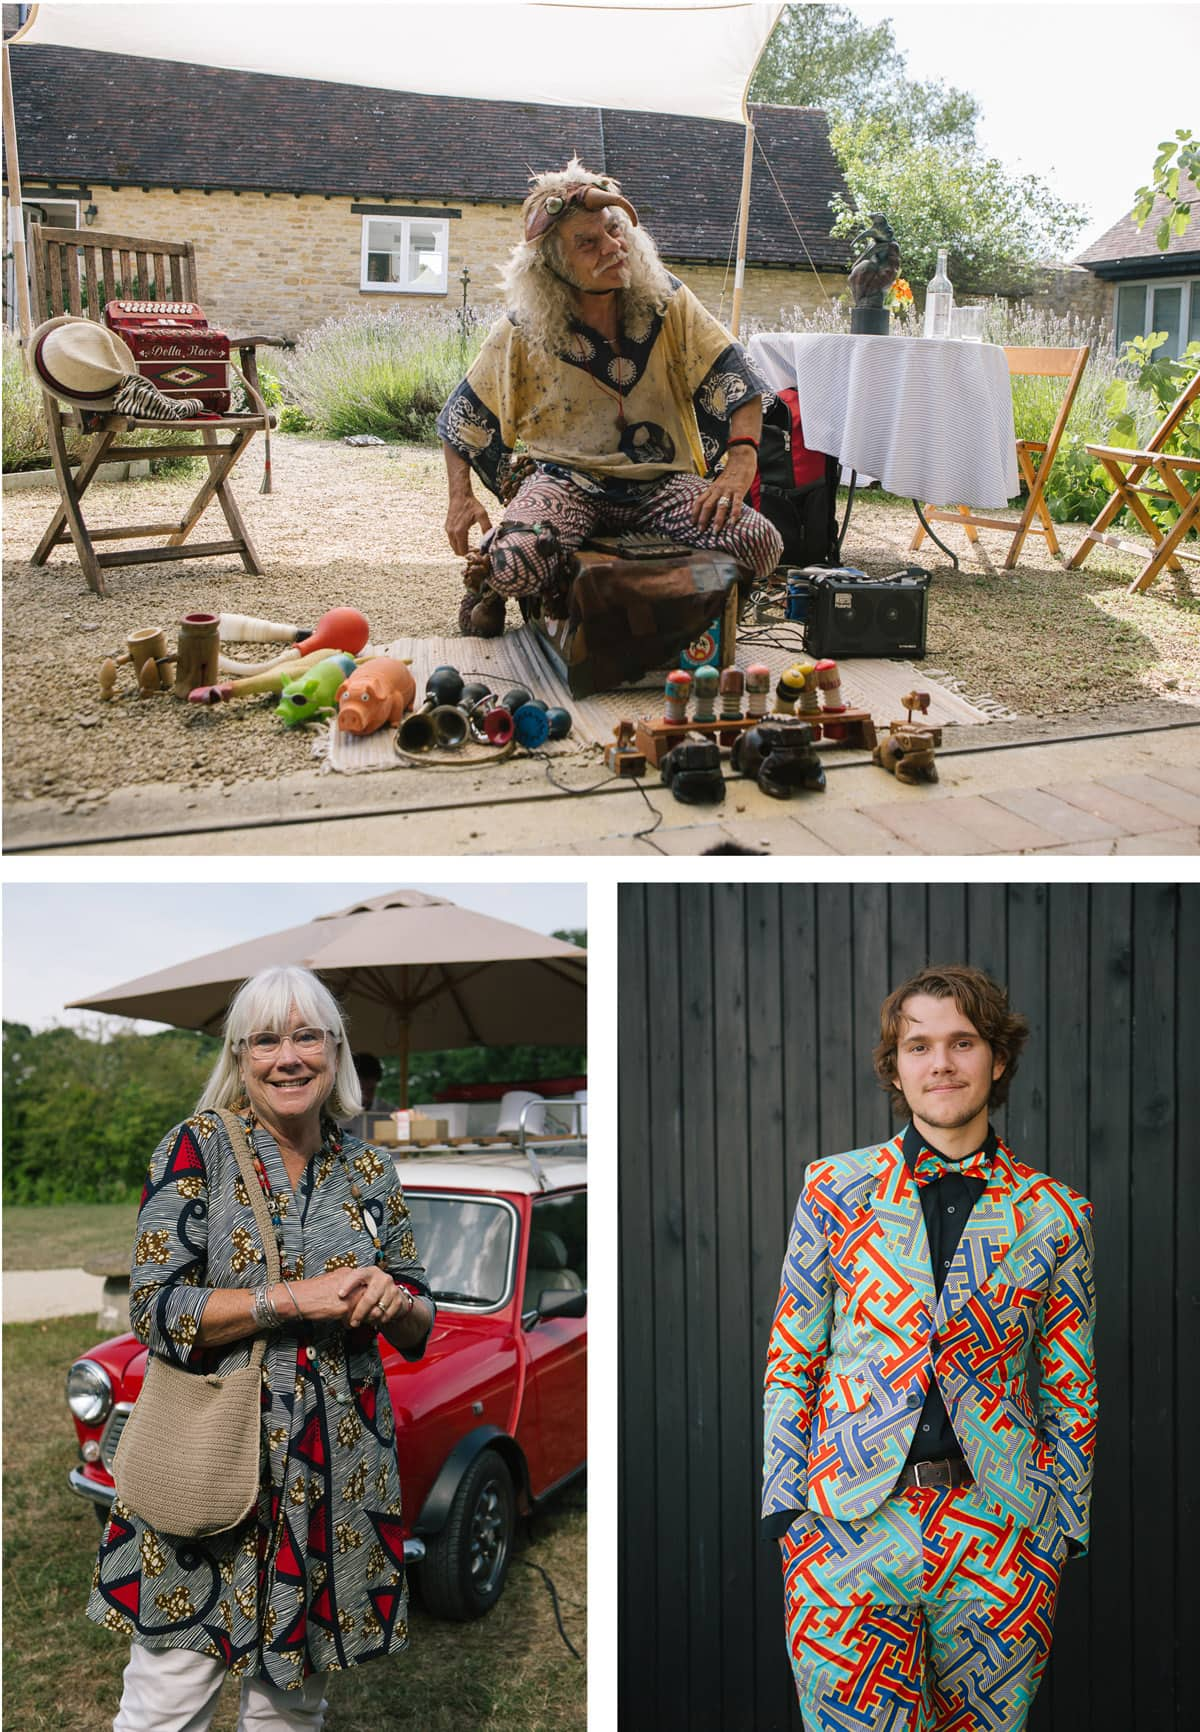 Collage of images from a safari-themed wedding. From the top: The Birdman prepares for his performance; young male guest wears brightly patterned suit; female guest in patterned dress at the food trucks